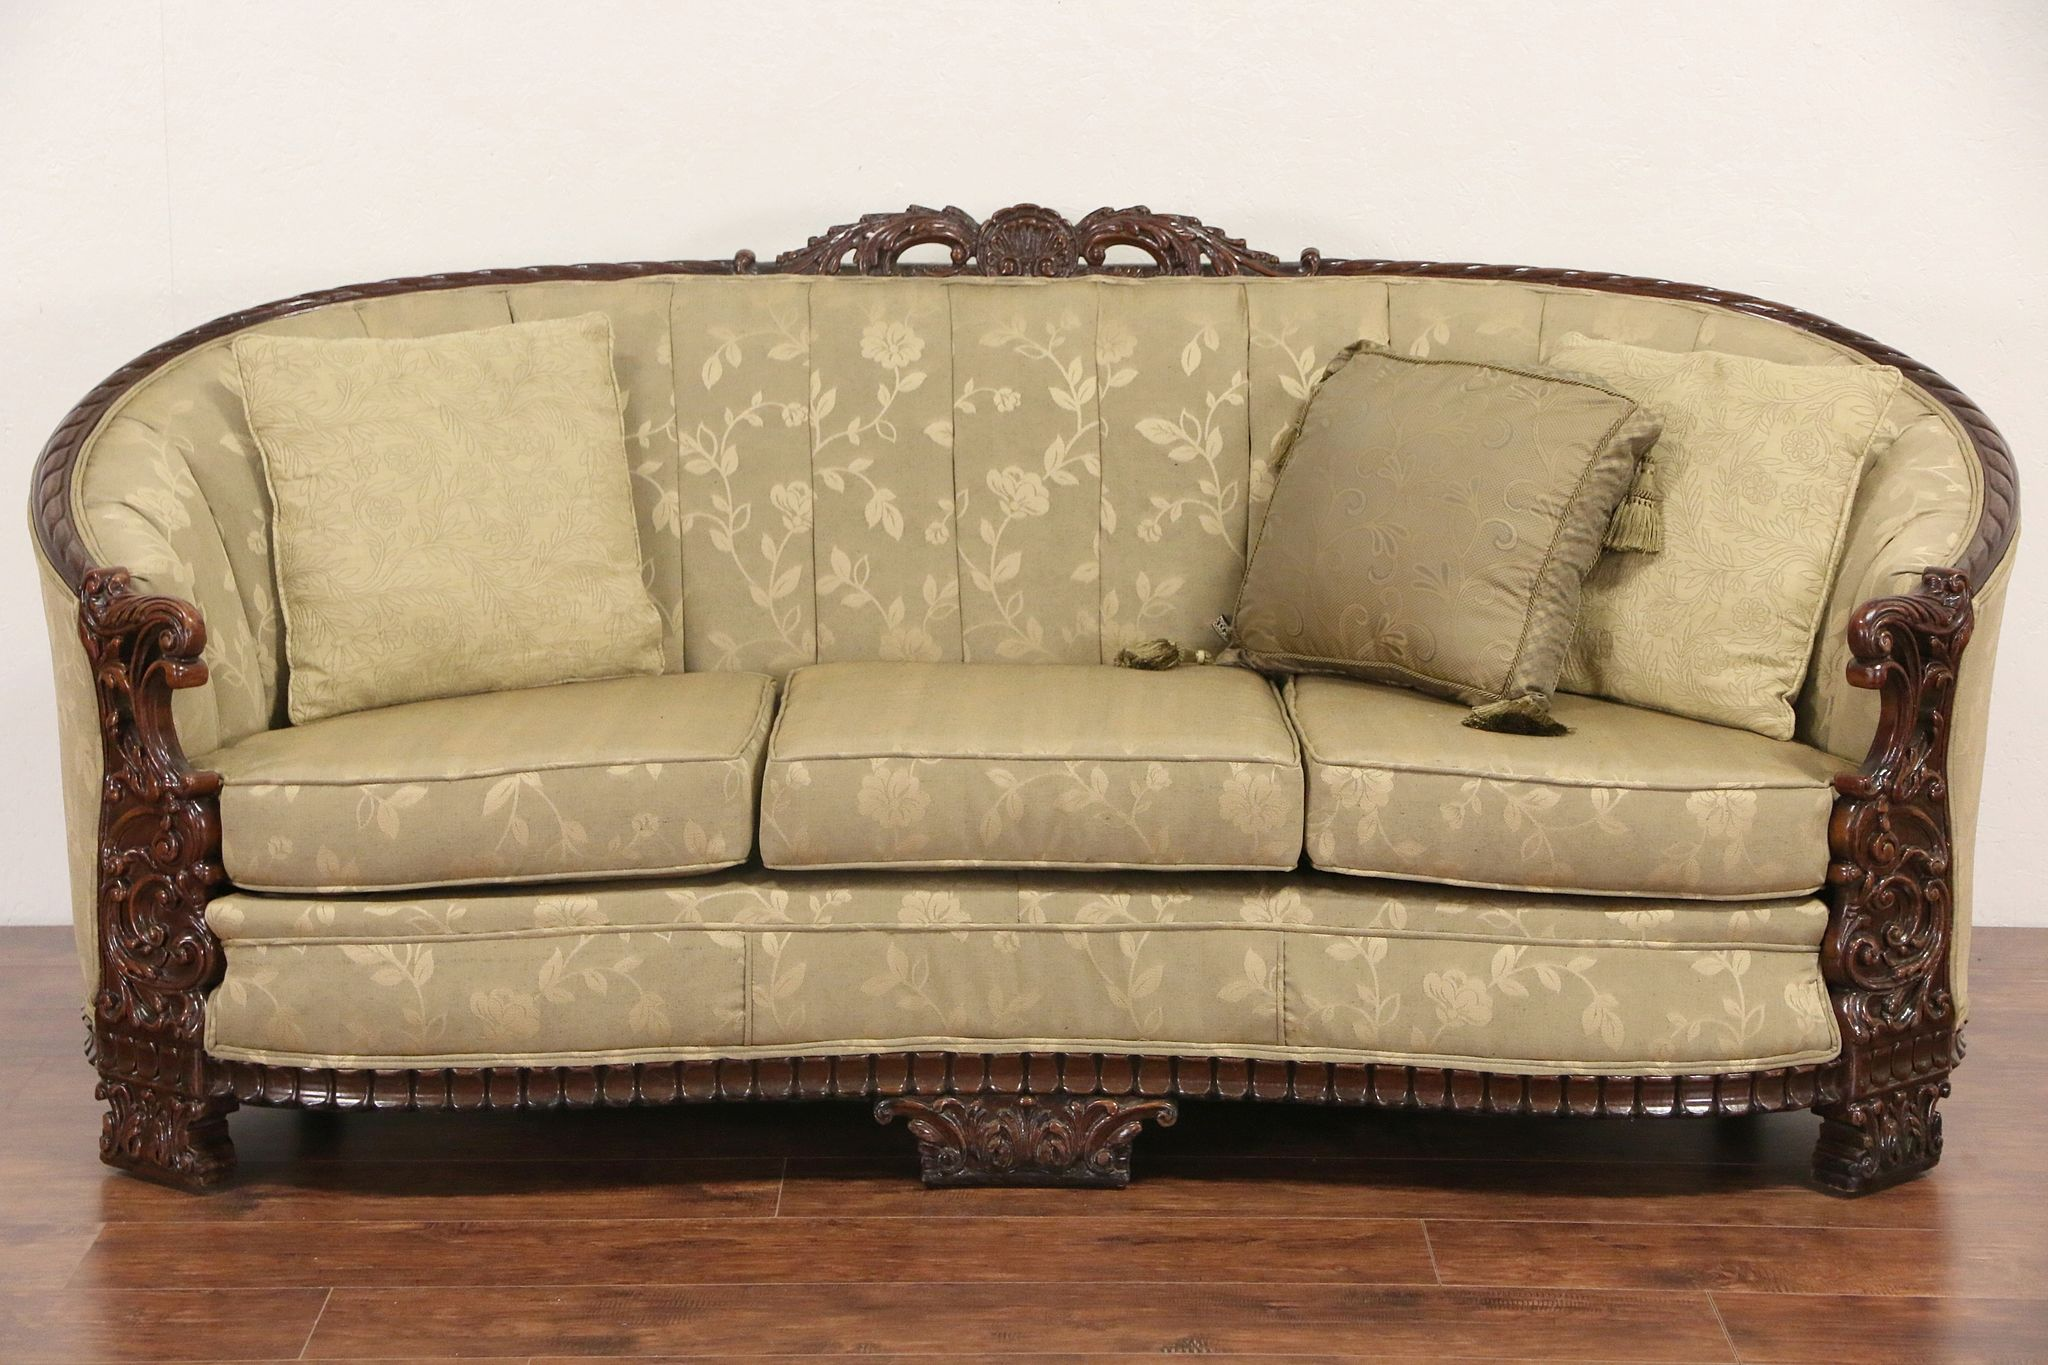 Super Carved Sofa Club Chair Set 1930S Vintage Recent Upholstery Ncnpc Chair Design For Home Ncnpcorg